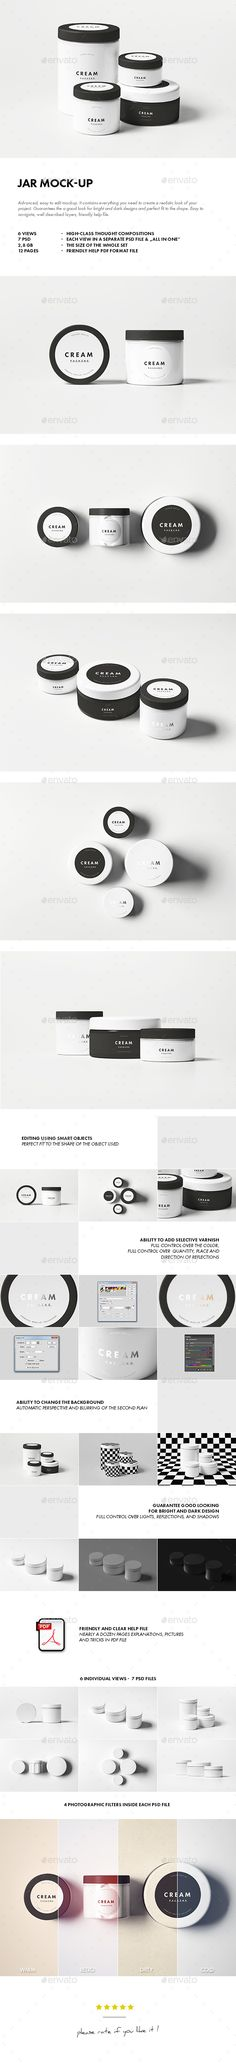 Buy Jar Mock-up by on GraphicRiver. Jar Mock-up Advanced, easy to edit mockup. It contains everything you need to create a realistic look of your project. Skincare Packaging, Cosmetic Packaging, Beauty Packaging, Brand Packaging, Design Packaging, Label Design, Mockup Photoshop, Packaging Design Inspiration, Design Elements